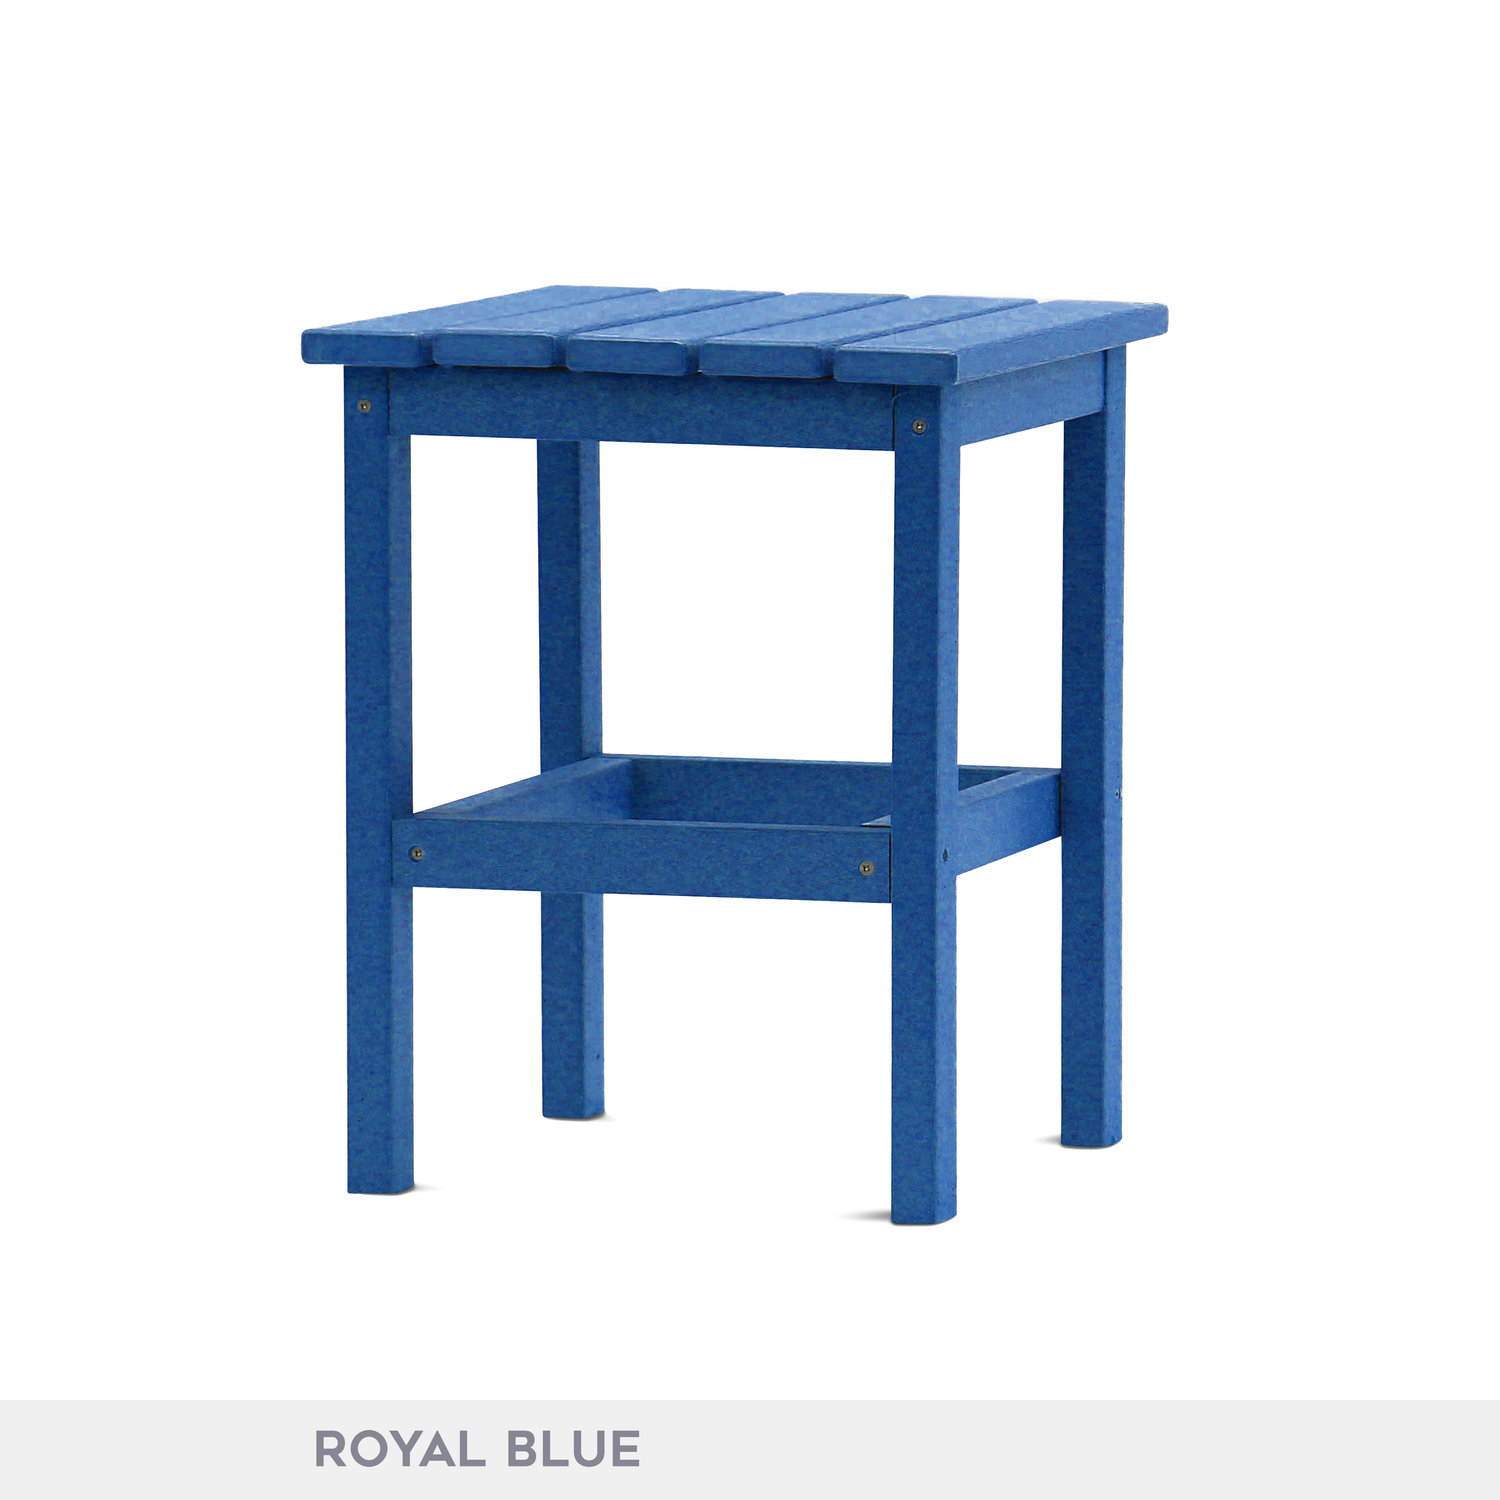 durogreen square side table outdoor blue nate berkus furniture foyer and mirror nesting tables safavieh brogen accent antique round wood chairs with umbrella bbq built stackable